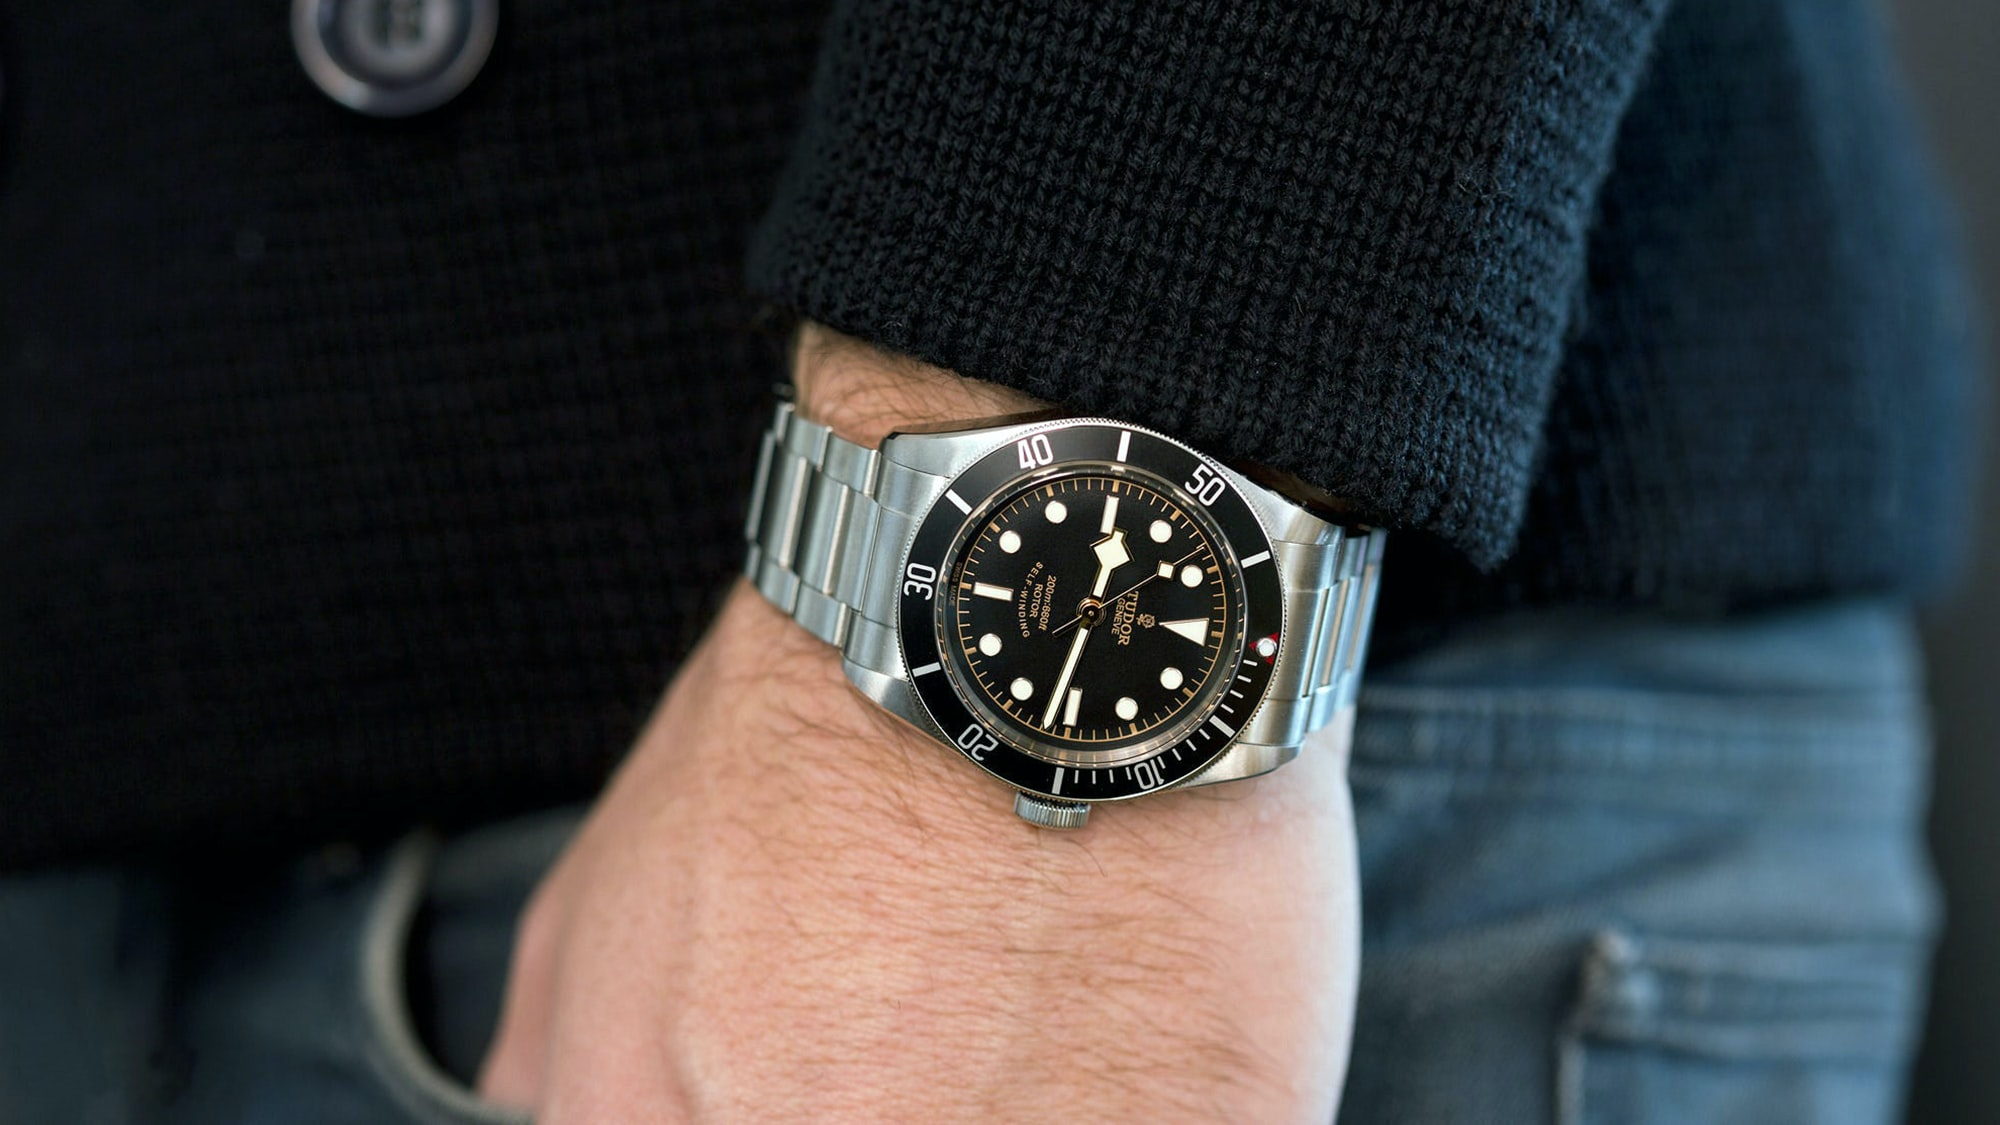 Tudor2.jpeg?ixlib=rails 1.1 A Week On The Wrist: Ten Of The Biggest, Baddest HODINKEE Reviews Ever A Week On The Wrist: Ten Of The Biggest, Baddest HODINKEE Reviews Ever tudor2